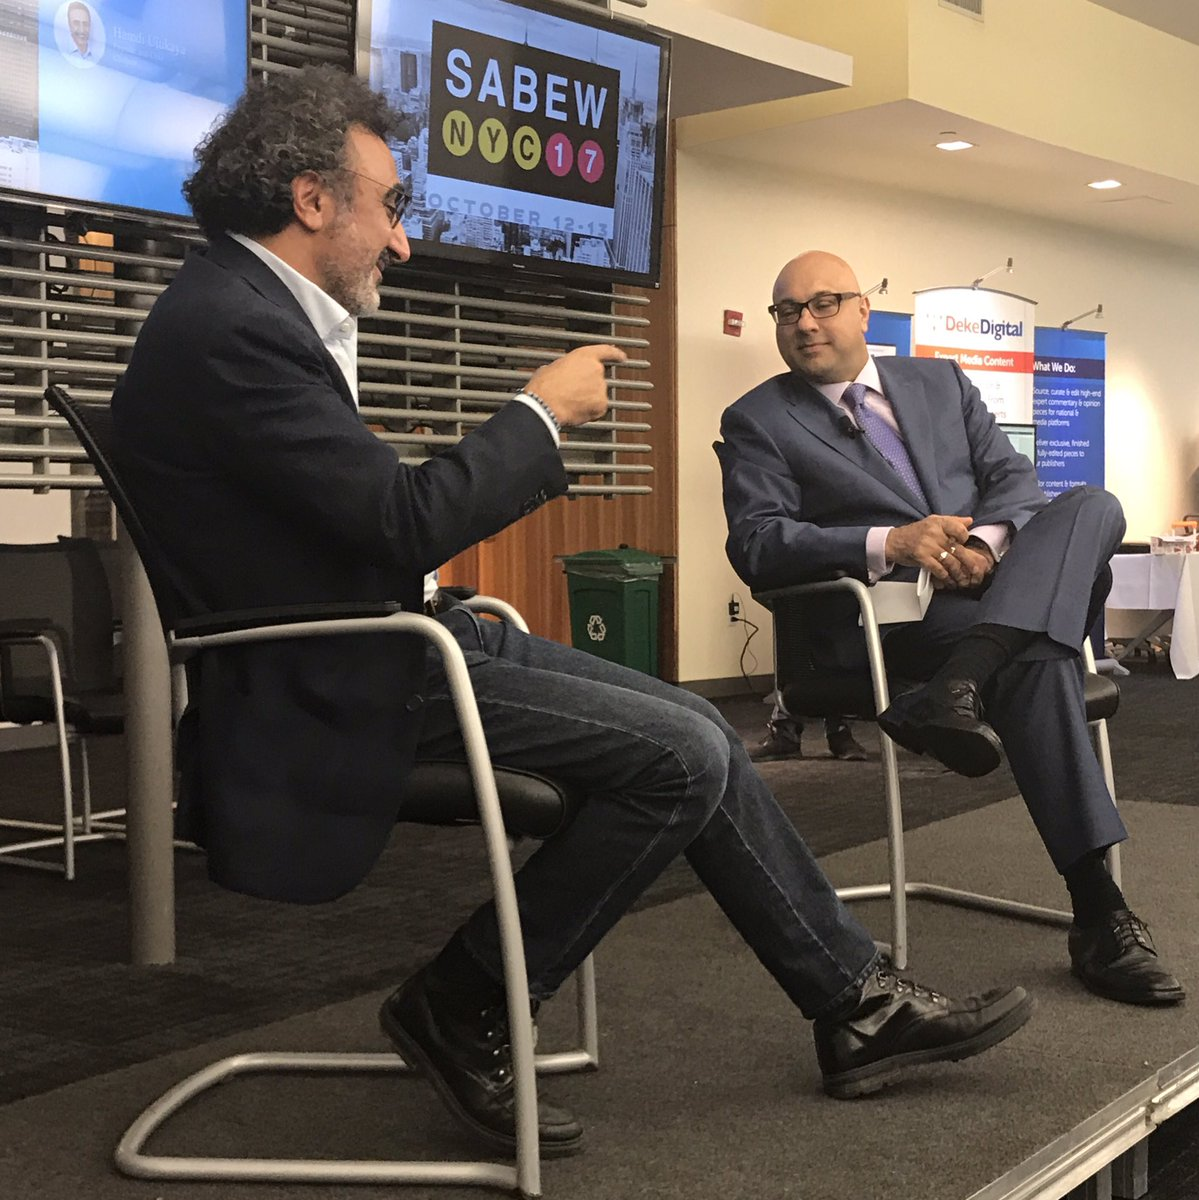 Thanks to @AliVelshi and @hamdiulukaya for a great conversation about @Chobani&#39;s origins, entrepreneurship and innovation. #sabewnyc17 <br>http://pic.twitter.com/QCm3PZOQCB